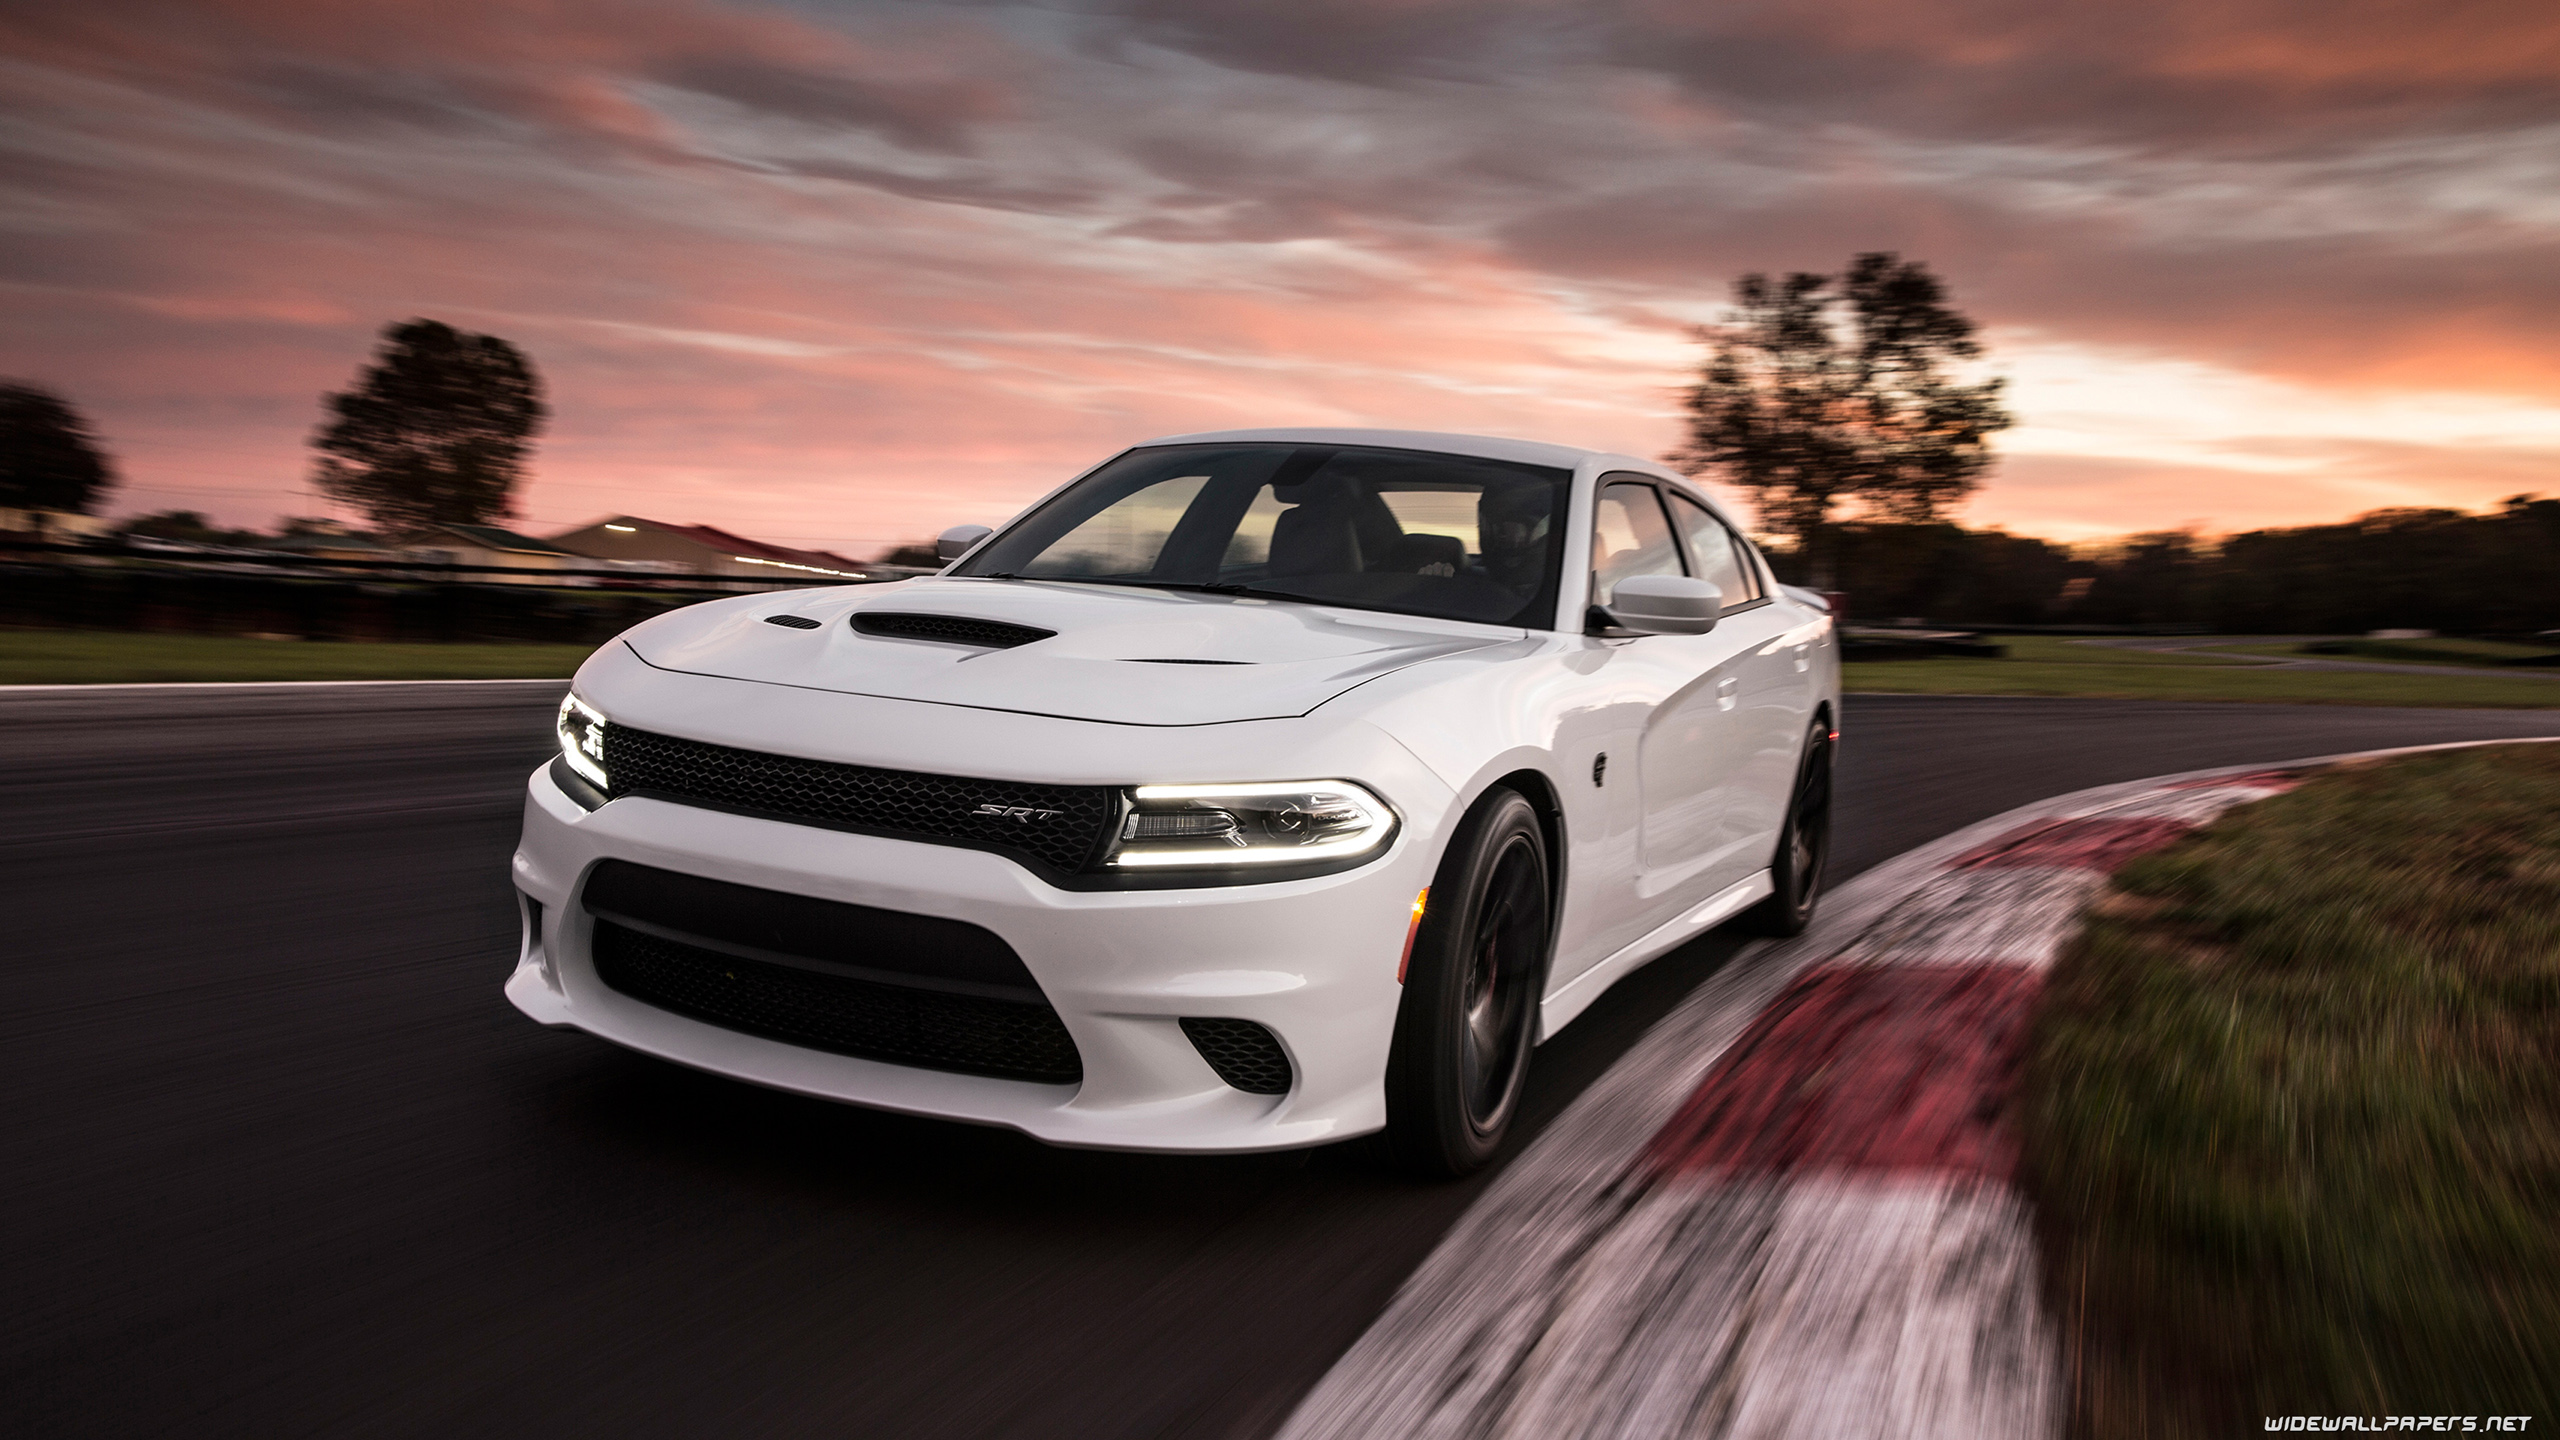 Charger Srt Hellcat >> Dodge Charger cars desktop wallpapers 4K Ultra HD - Page 3